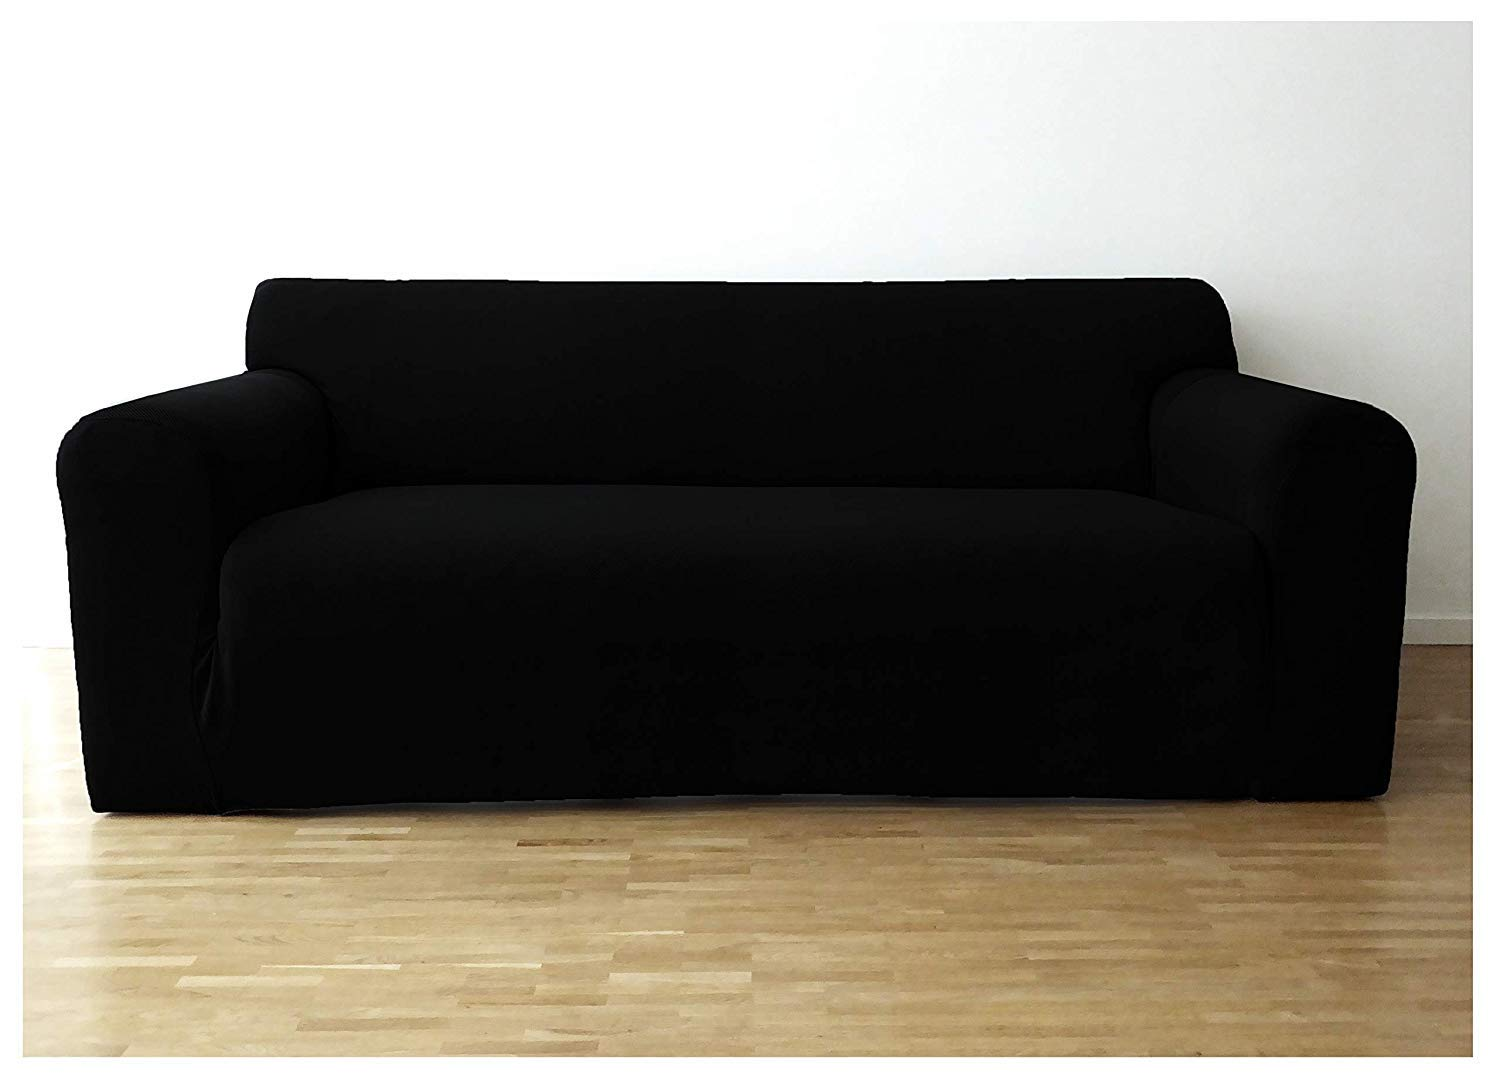 Bellboni - Elastic Couch Covers, Sofa Covers, bi-Elastic Stretch Covers, slipcovers to fit Many Popular Two-Seater Sofas, Black